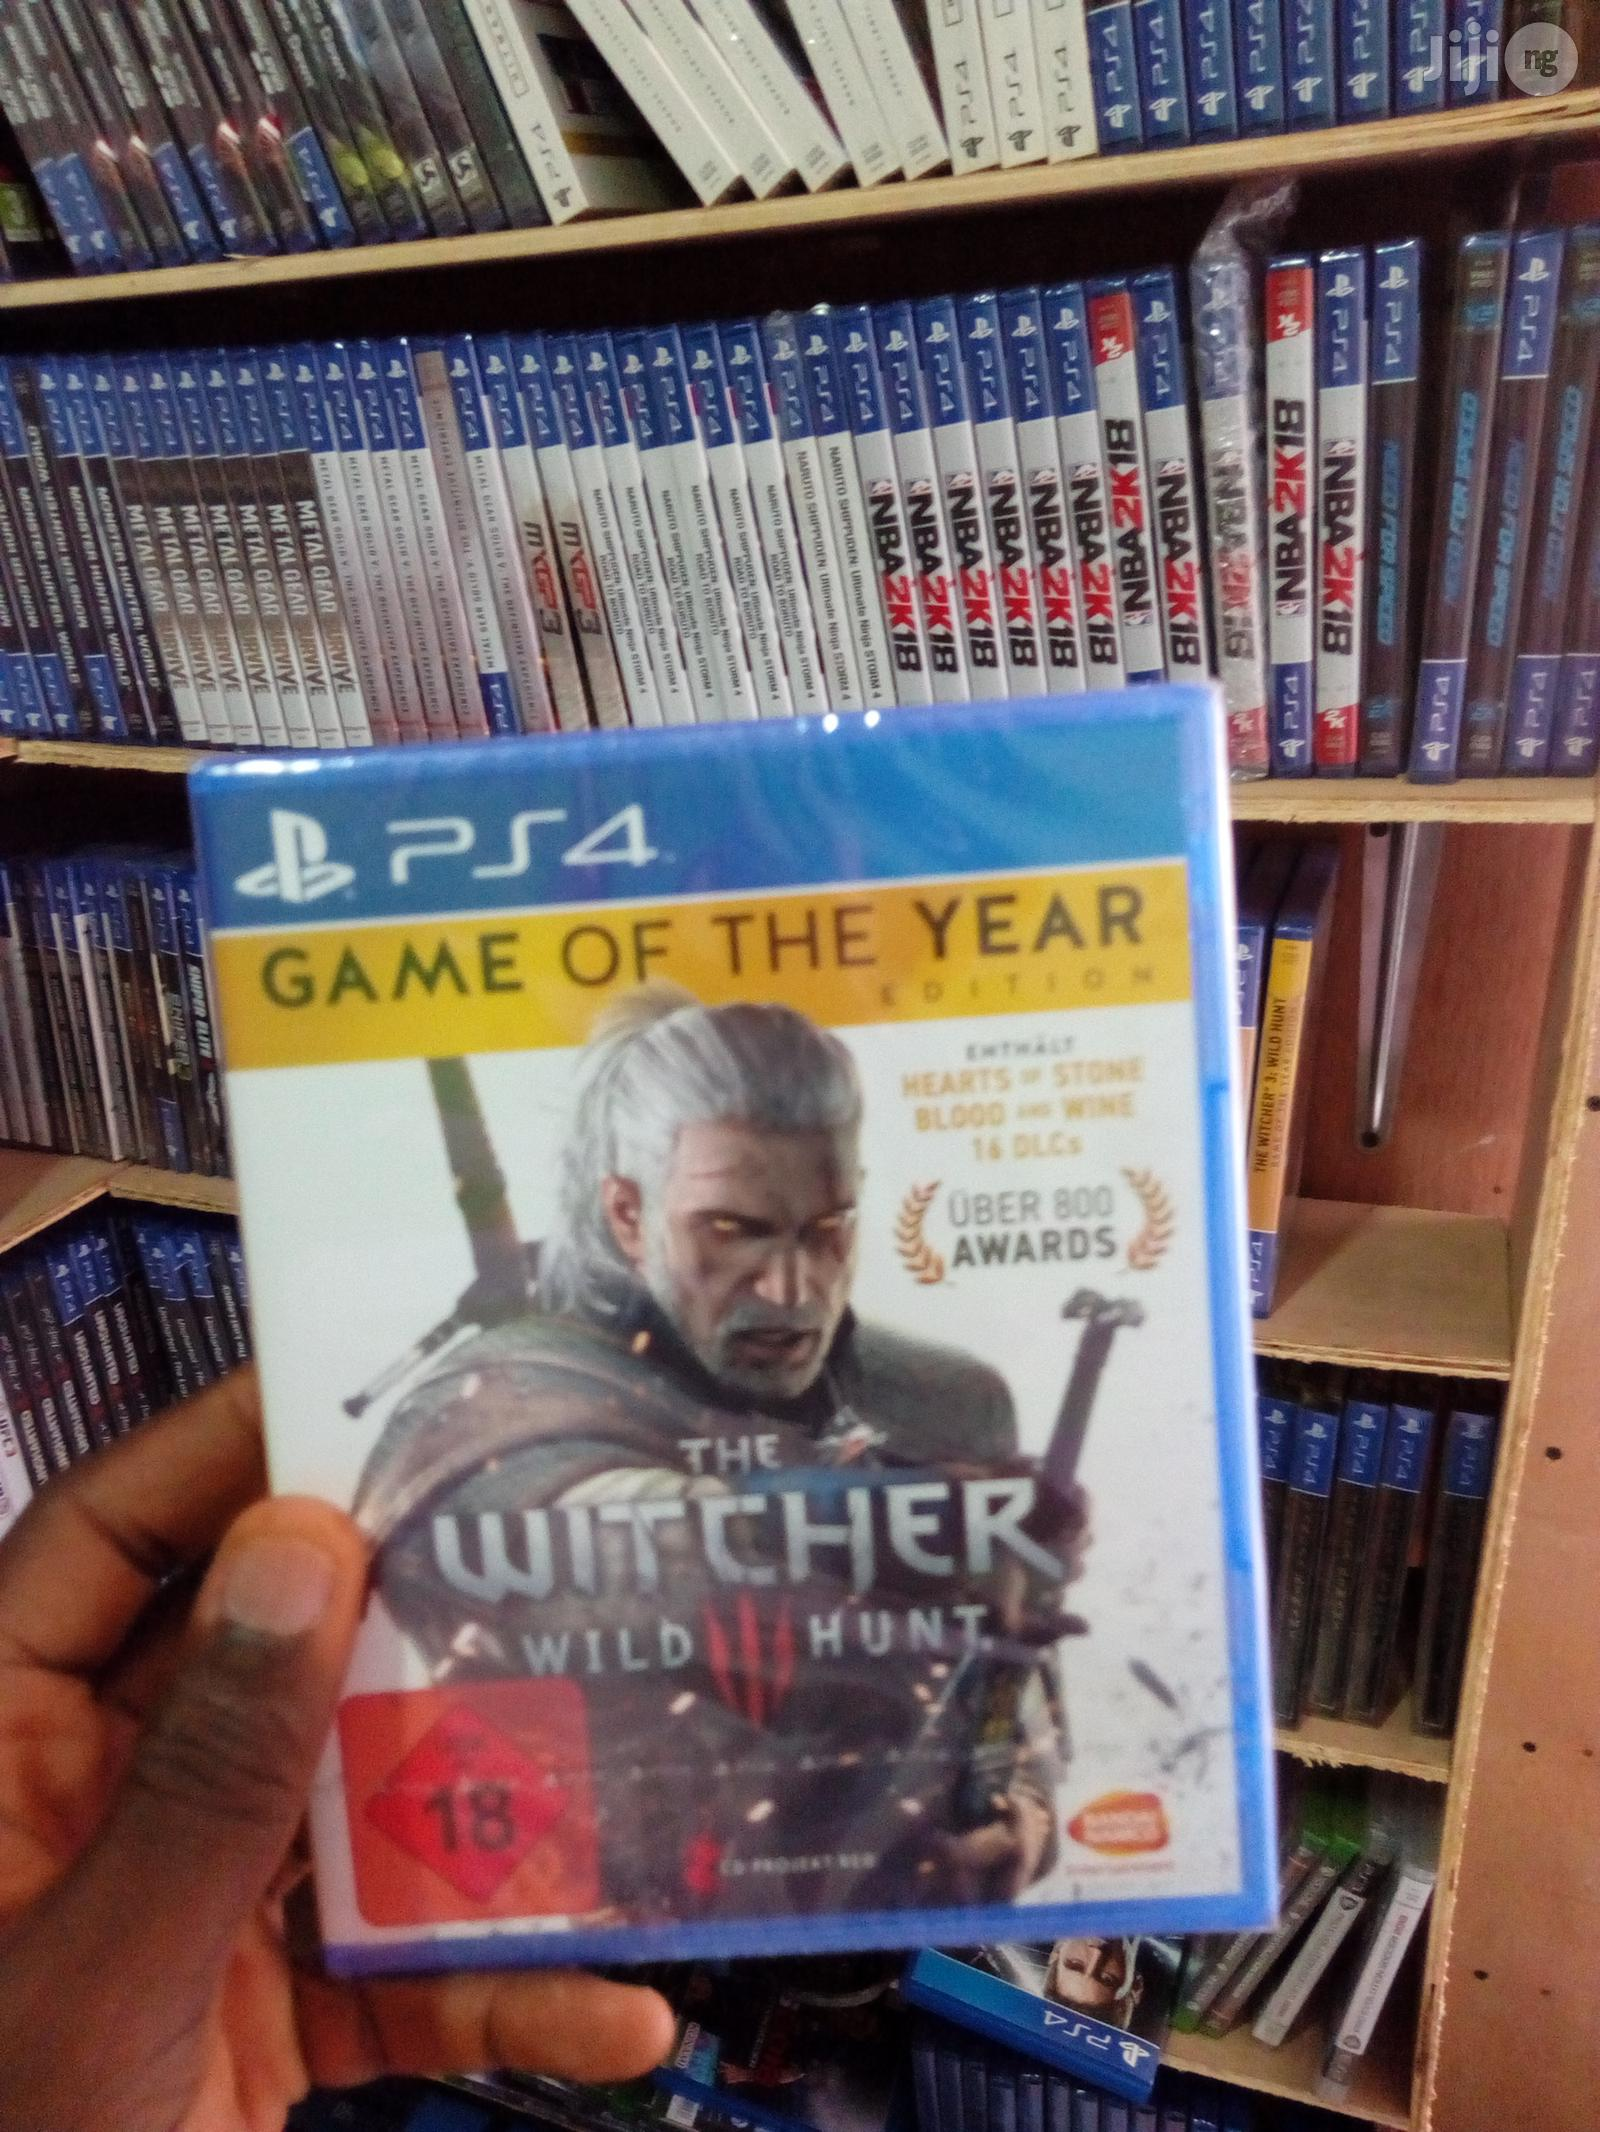 PS4 The Witcher 3: Wild Hunt - Complete Edition